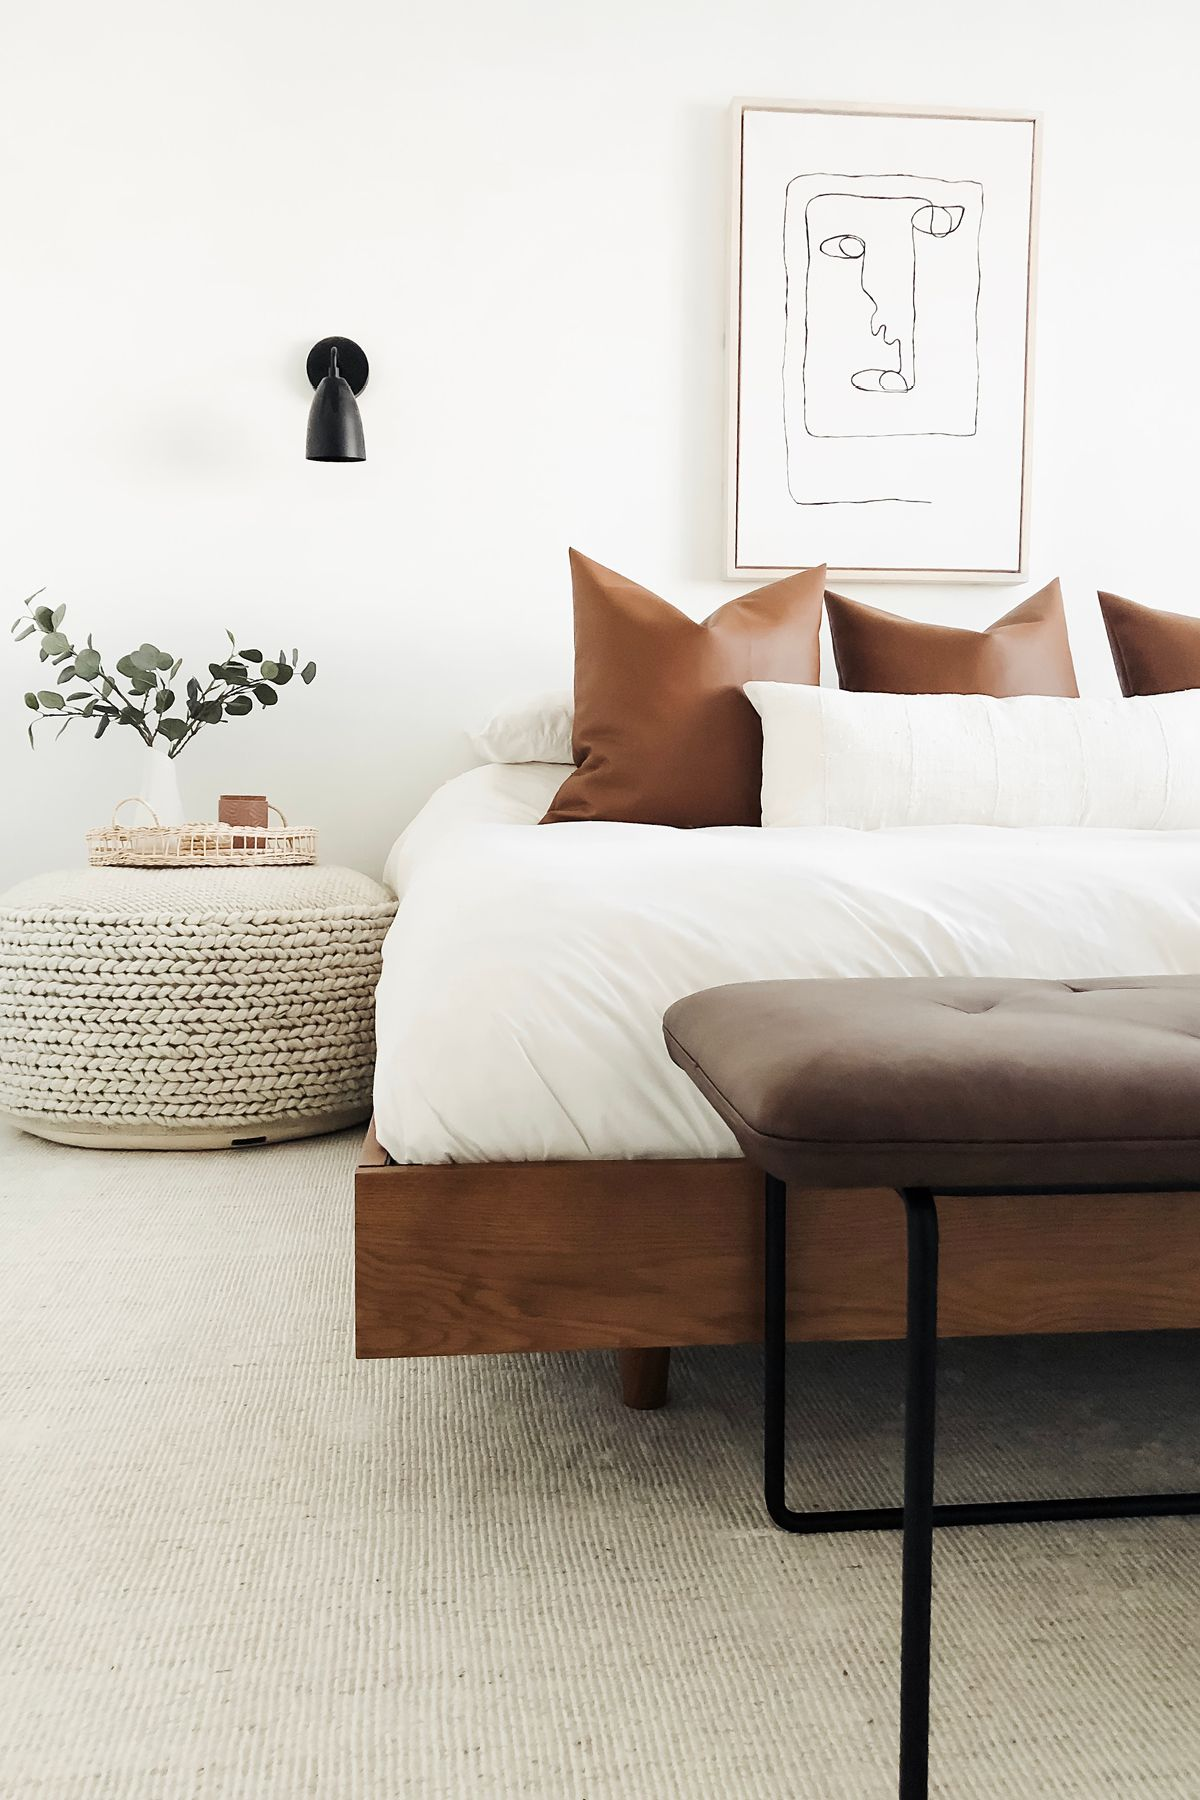 Basi Walnut Queen Bed Frame In 2020 Minimalist Bed Simple Bed